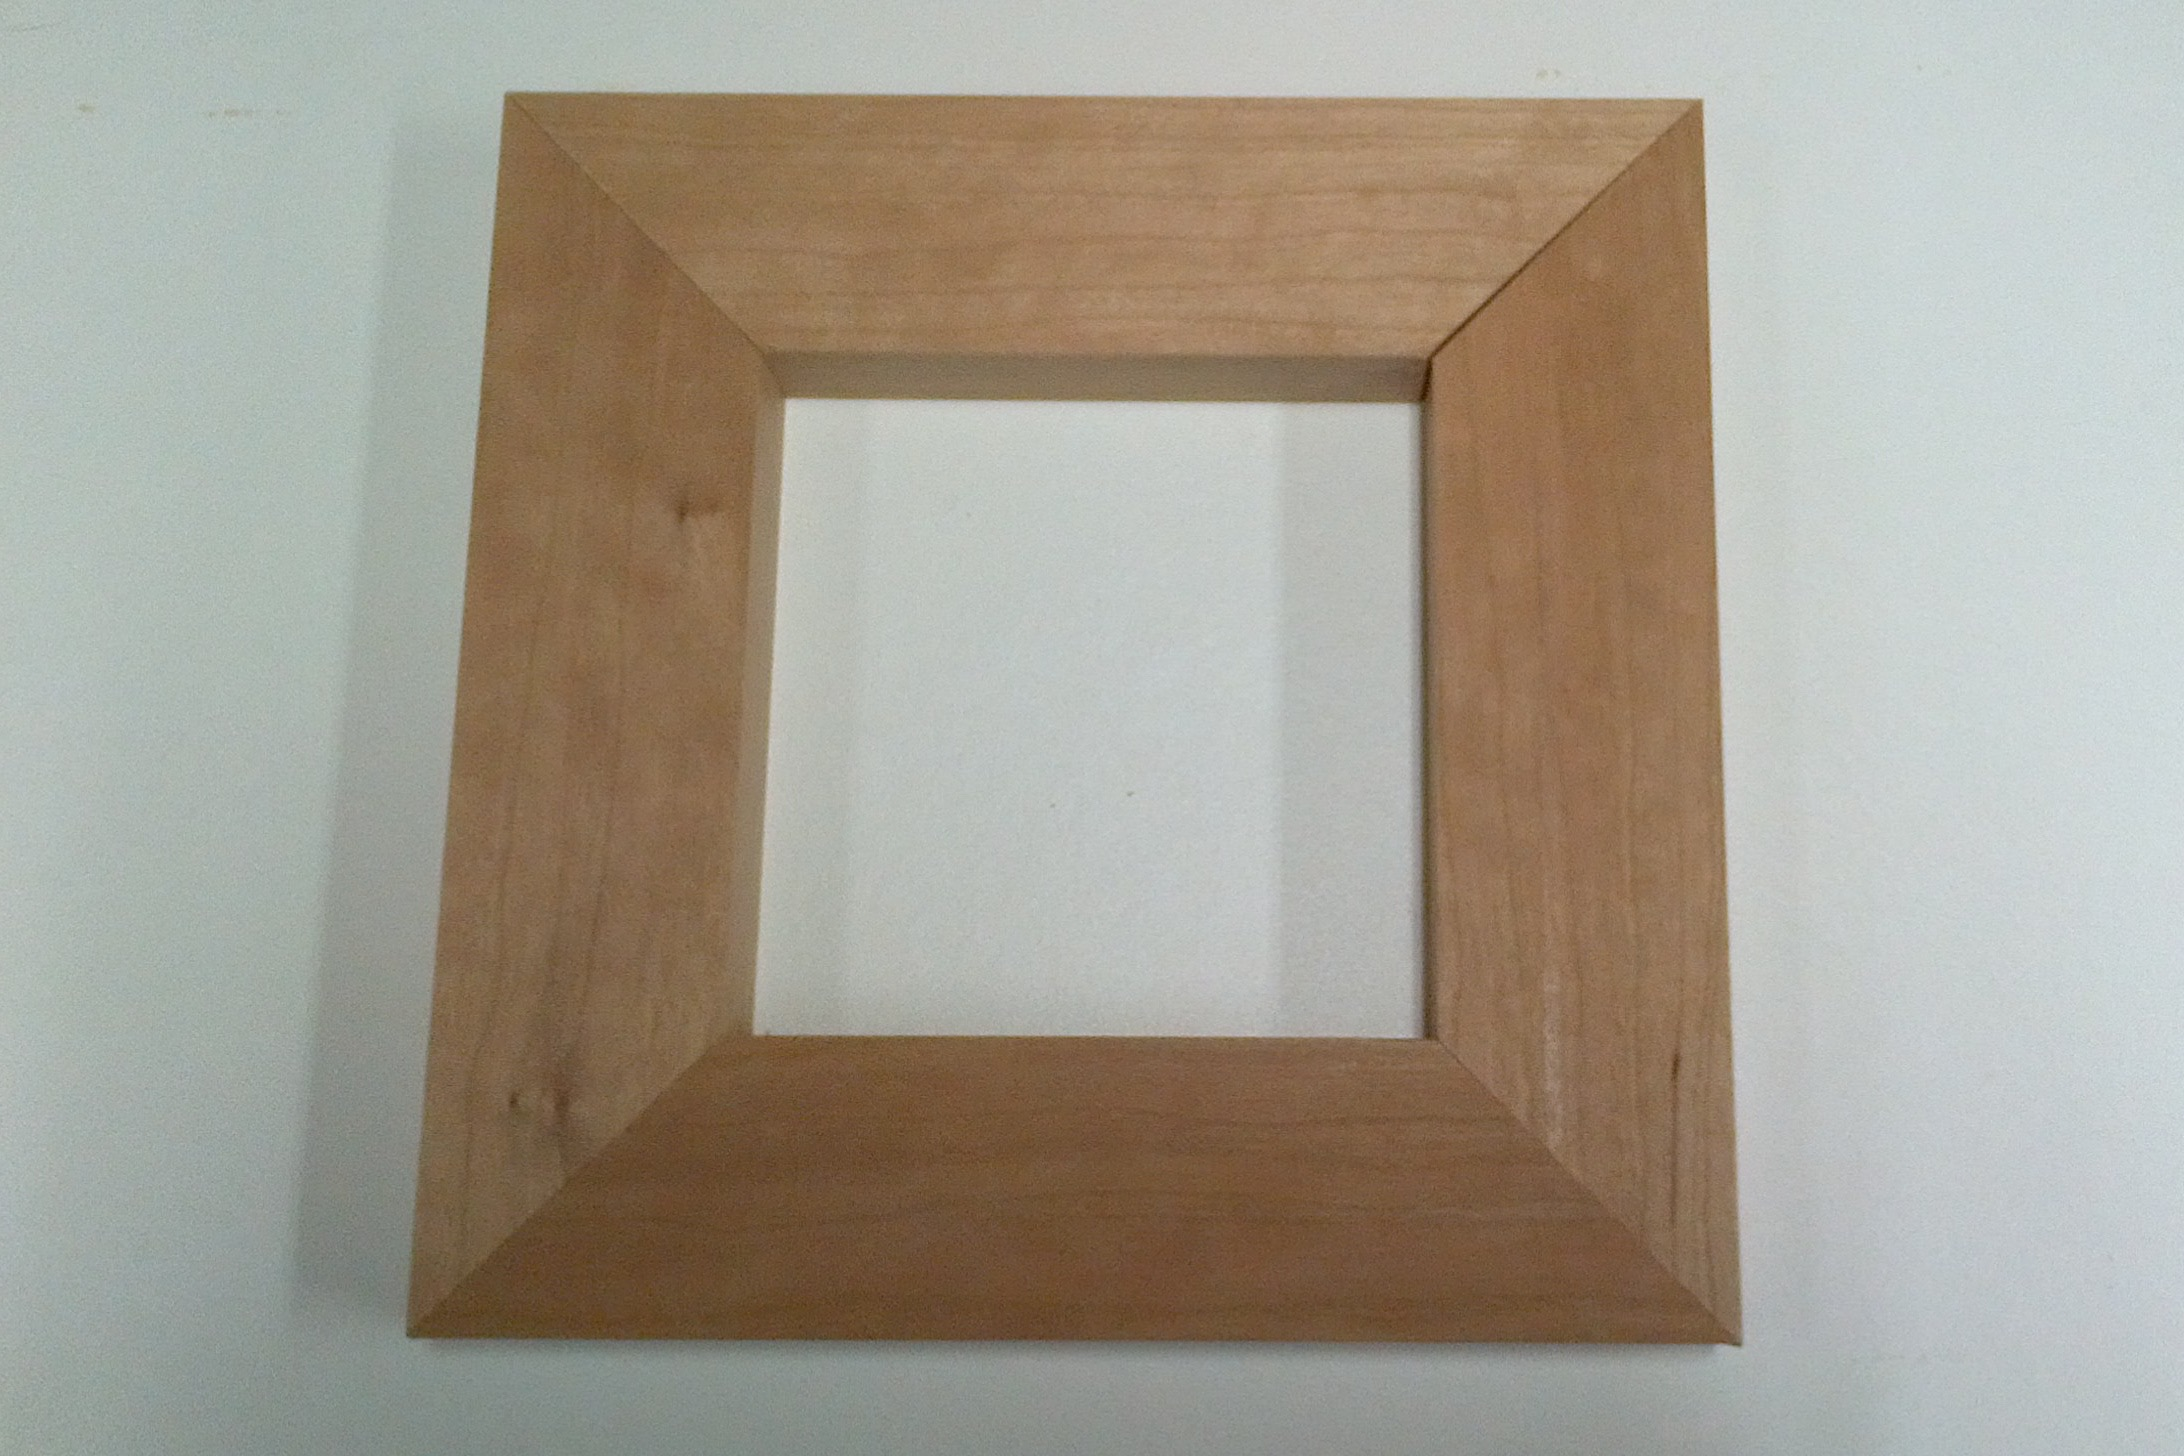 four-sided picture frame with miter joints